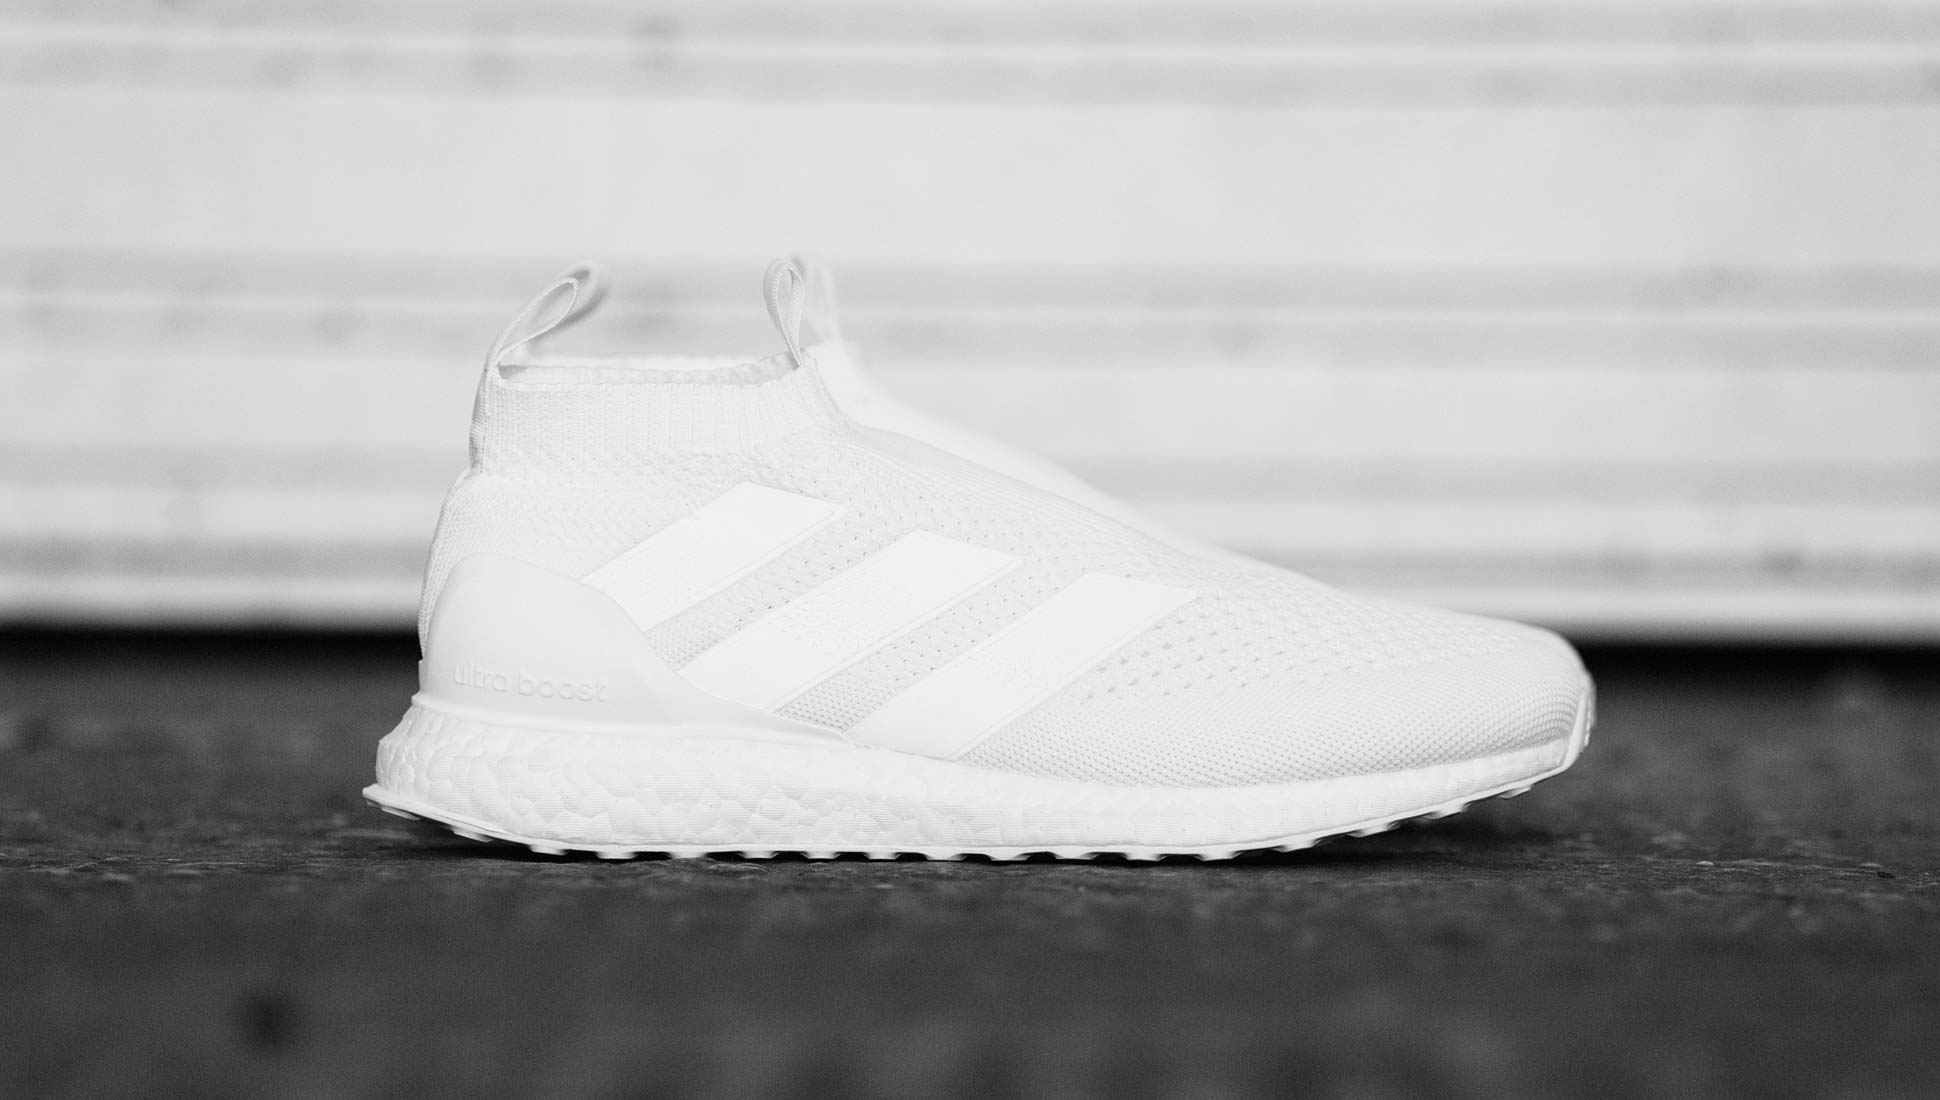 4e2324ed5d5 adidas Purecontrol Ultra Boost Triple White Sneakers - SoccerBible